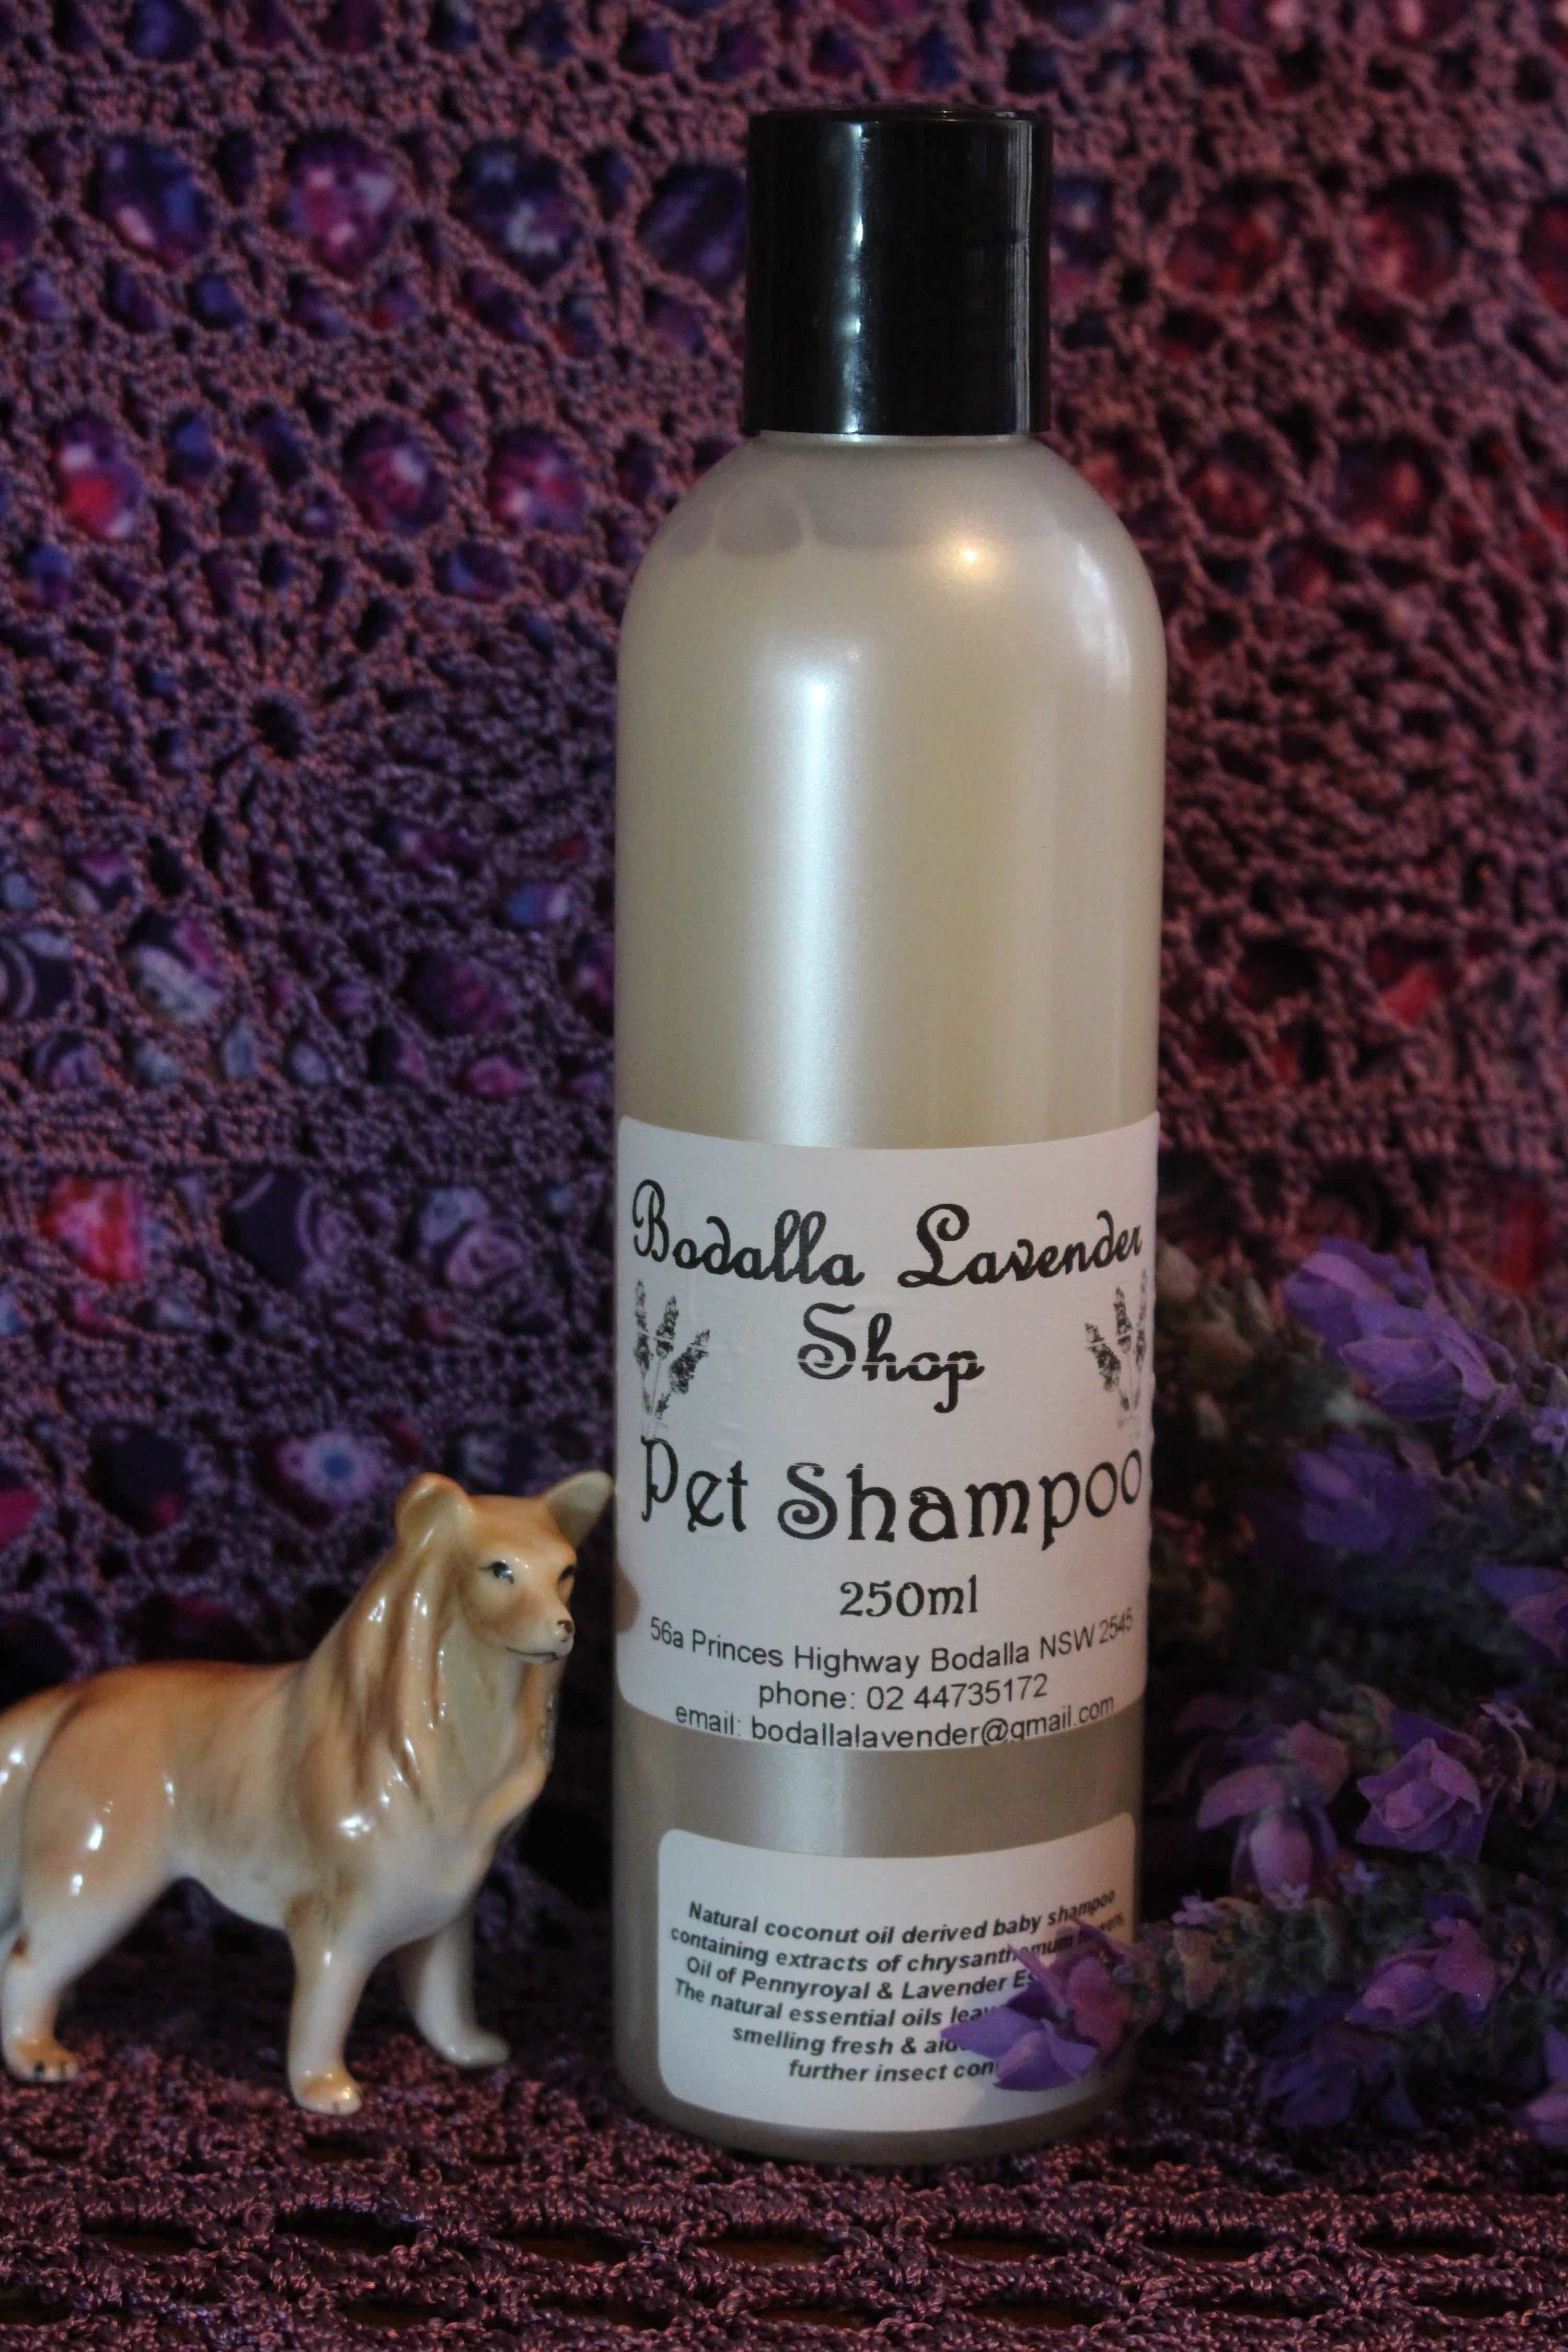 Photograph of an Lavender Pet Shampoo 250ml product